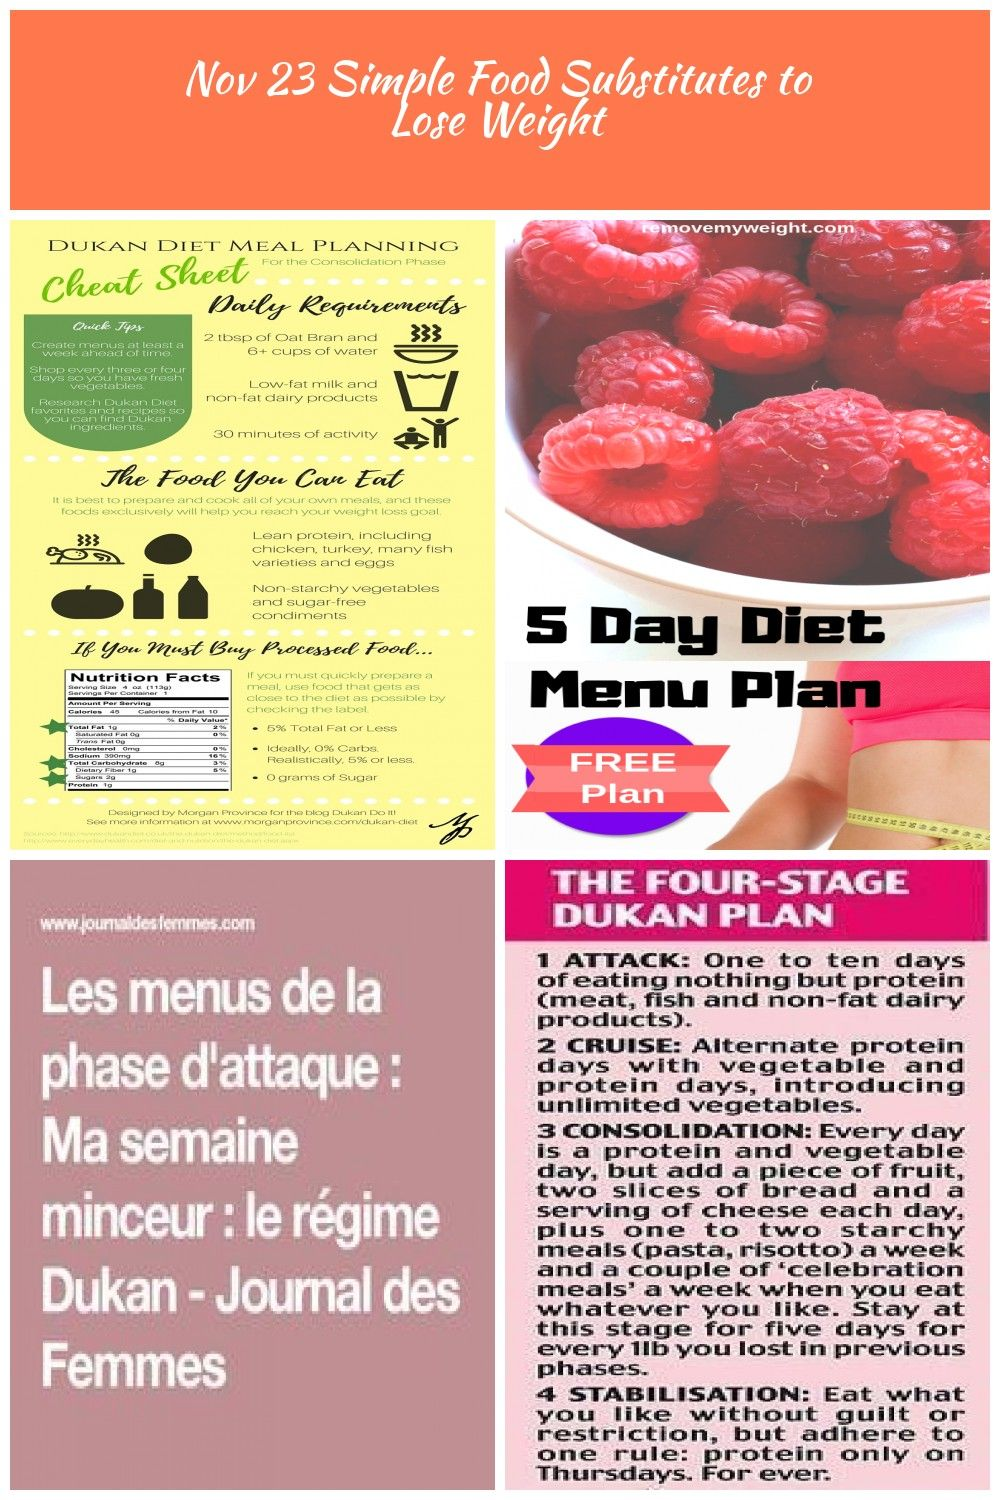 Meal Planning And Shopping Are Tough When On The Dukan Diet